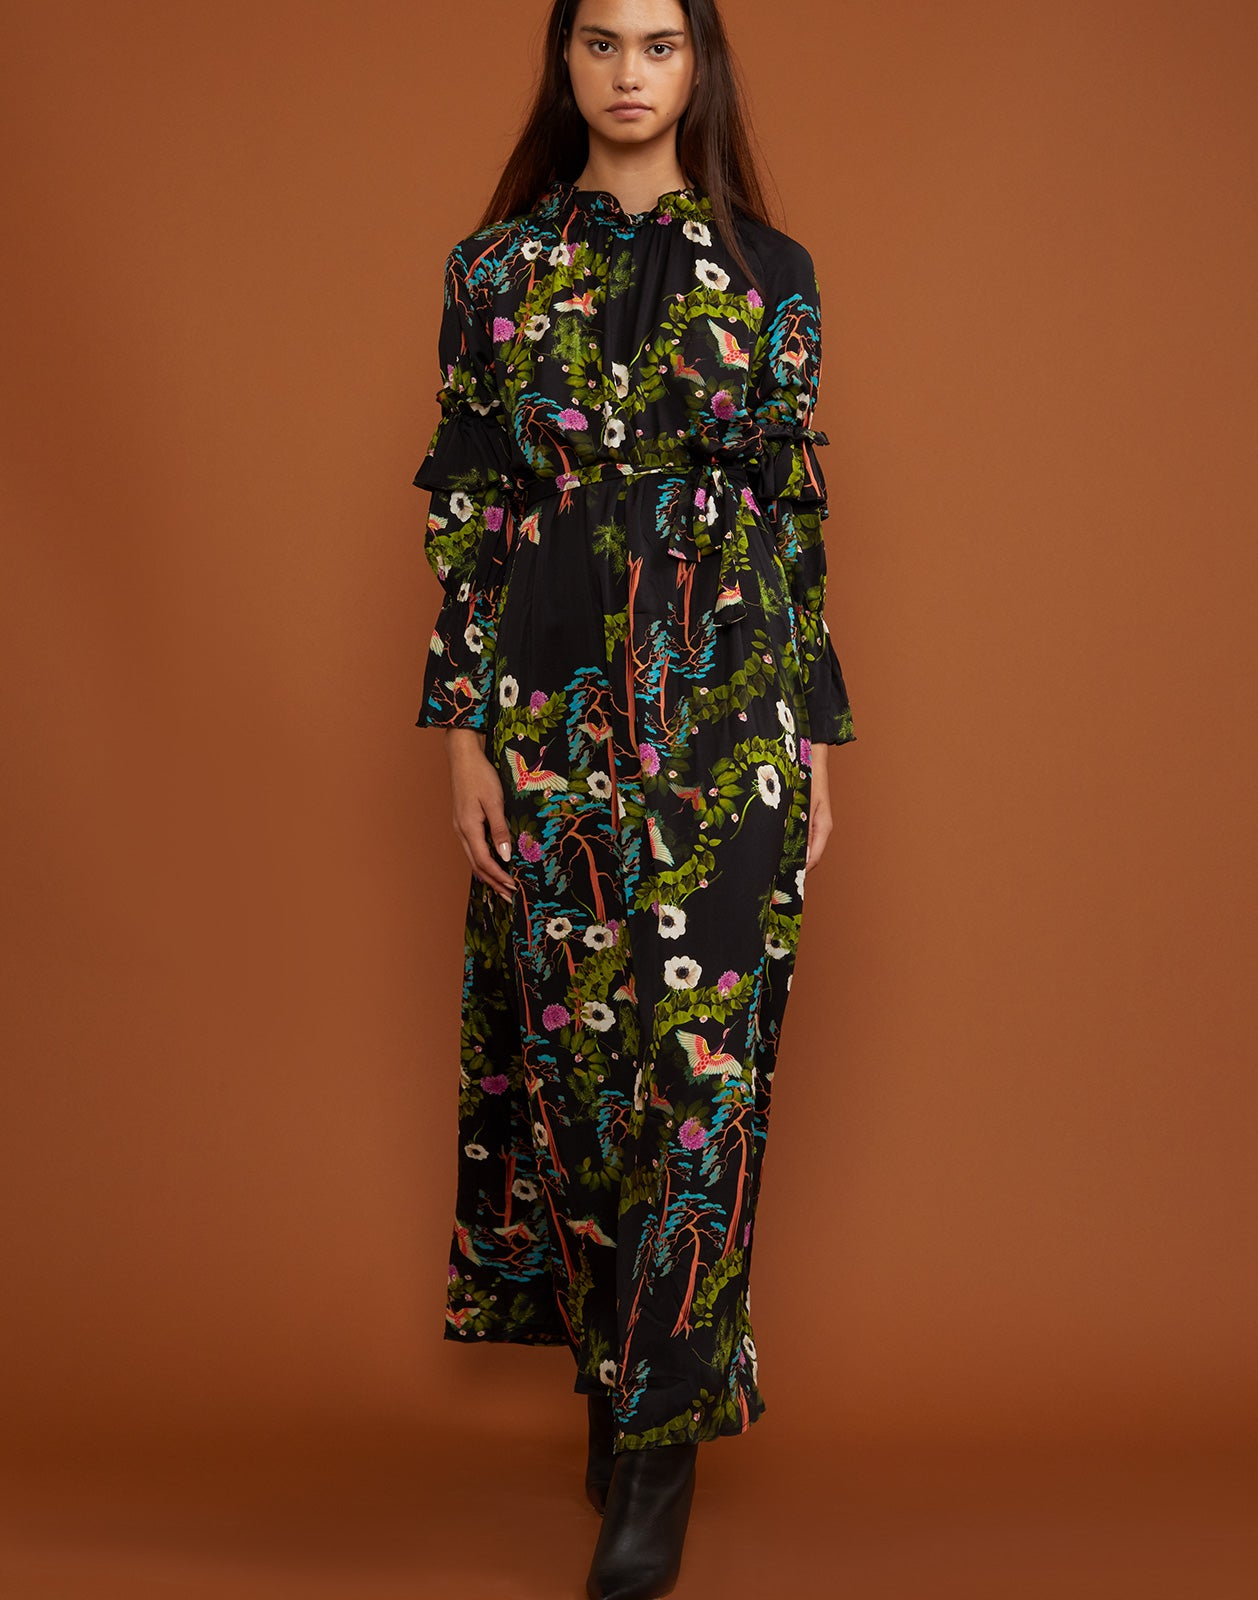 Full front view of the Allegra dark floral print dress with ruffle sleeves.